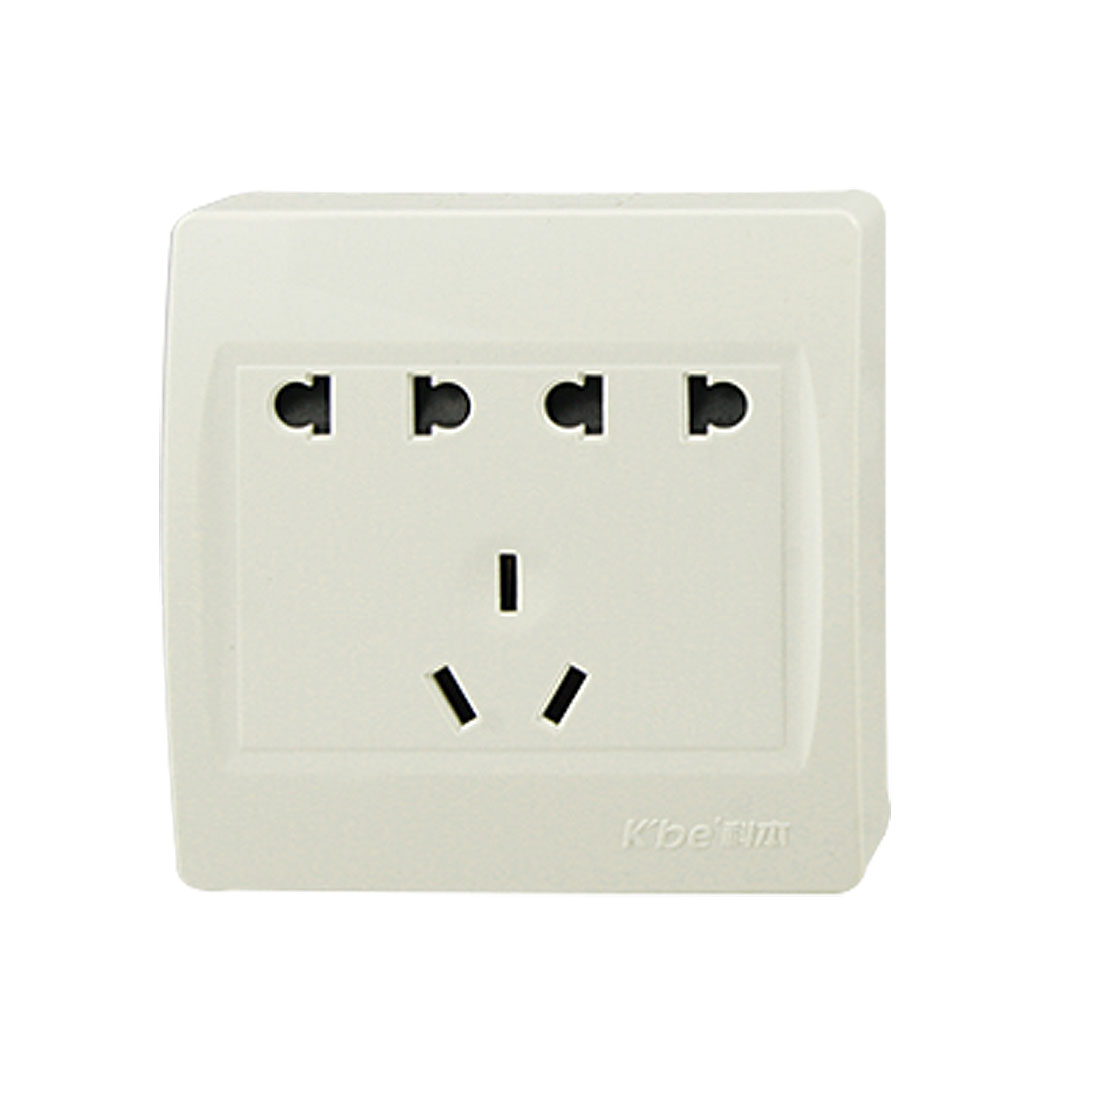 AC 250V 10A Dual 2 Pin EU US Socket 3 Pin AU Outlet Wall Plate